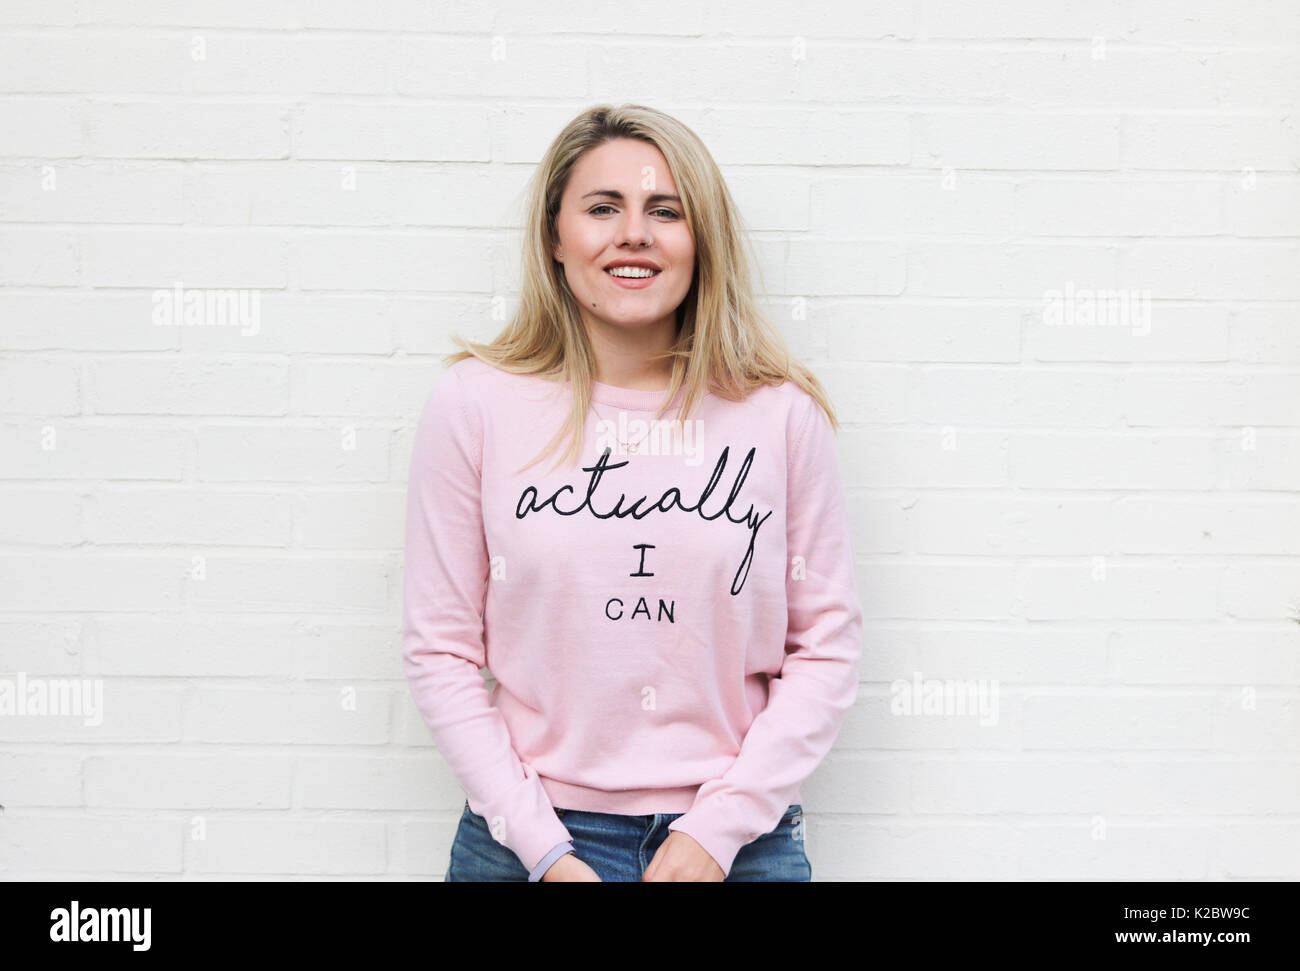 Young blonde woman in her early twenties wearing motivational jumper - Stock Image